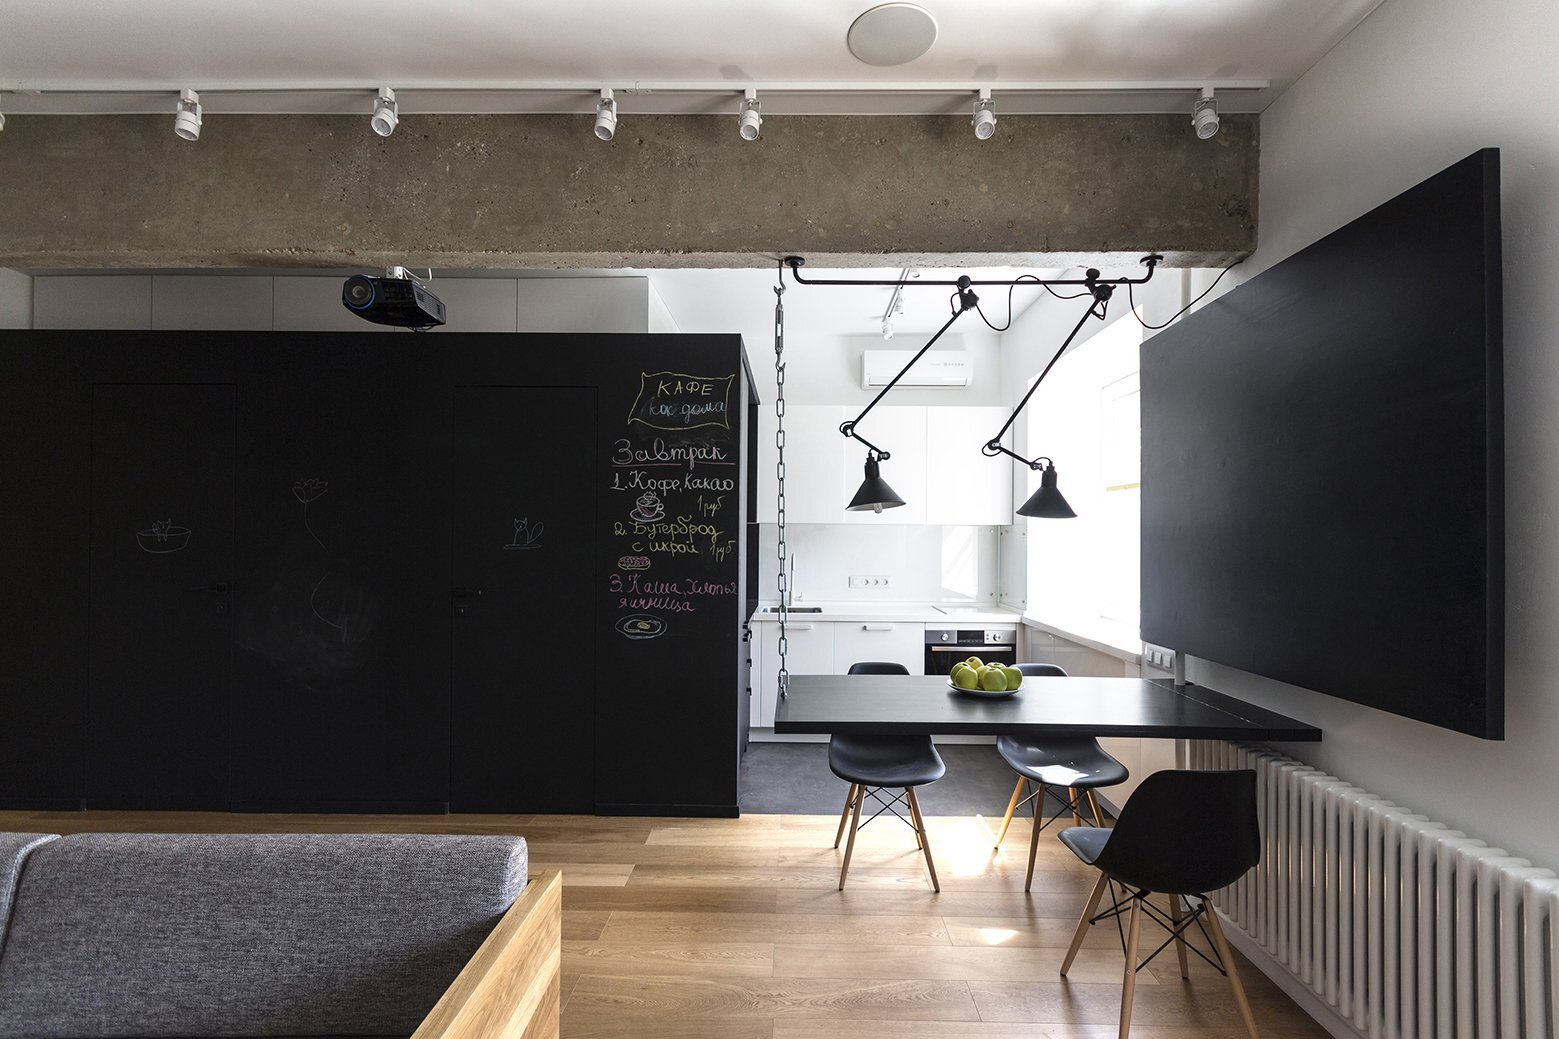 Small Apartment - Bagritsky - Ruetemple - Moscow - Dining Area and Kitchen - Humble Homes